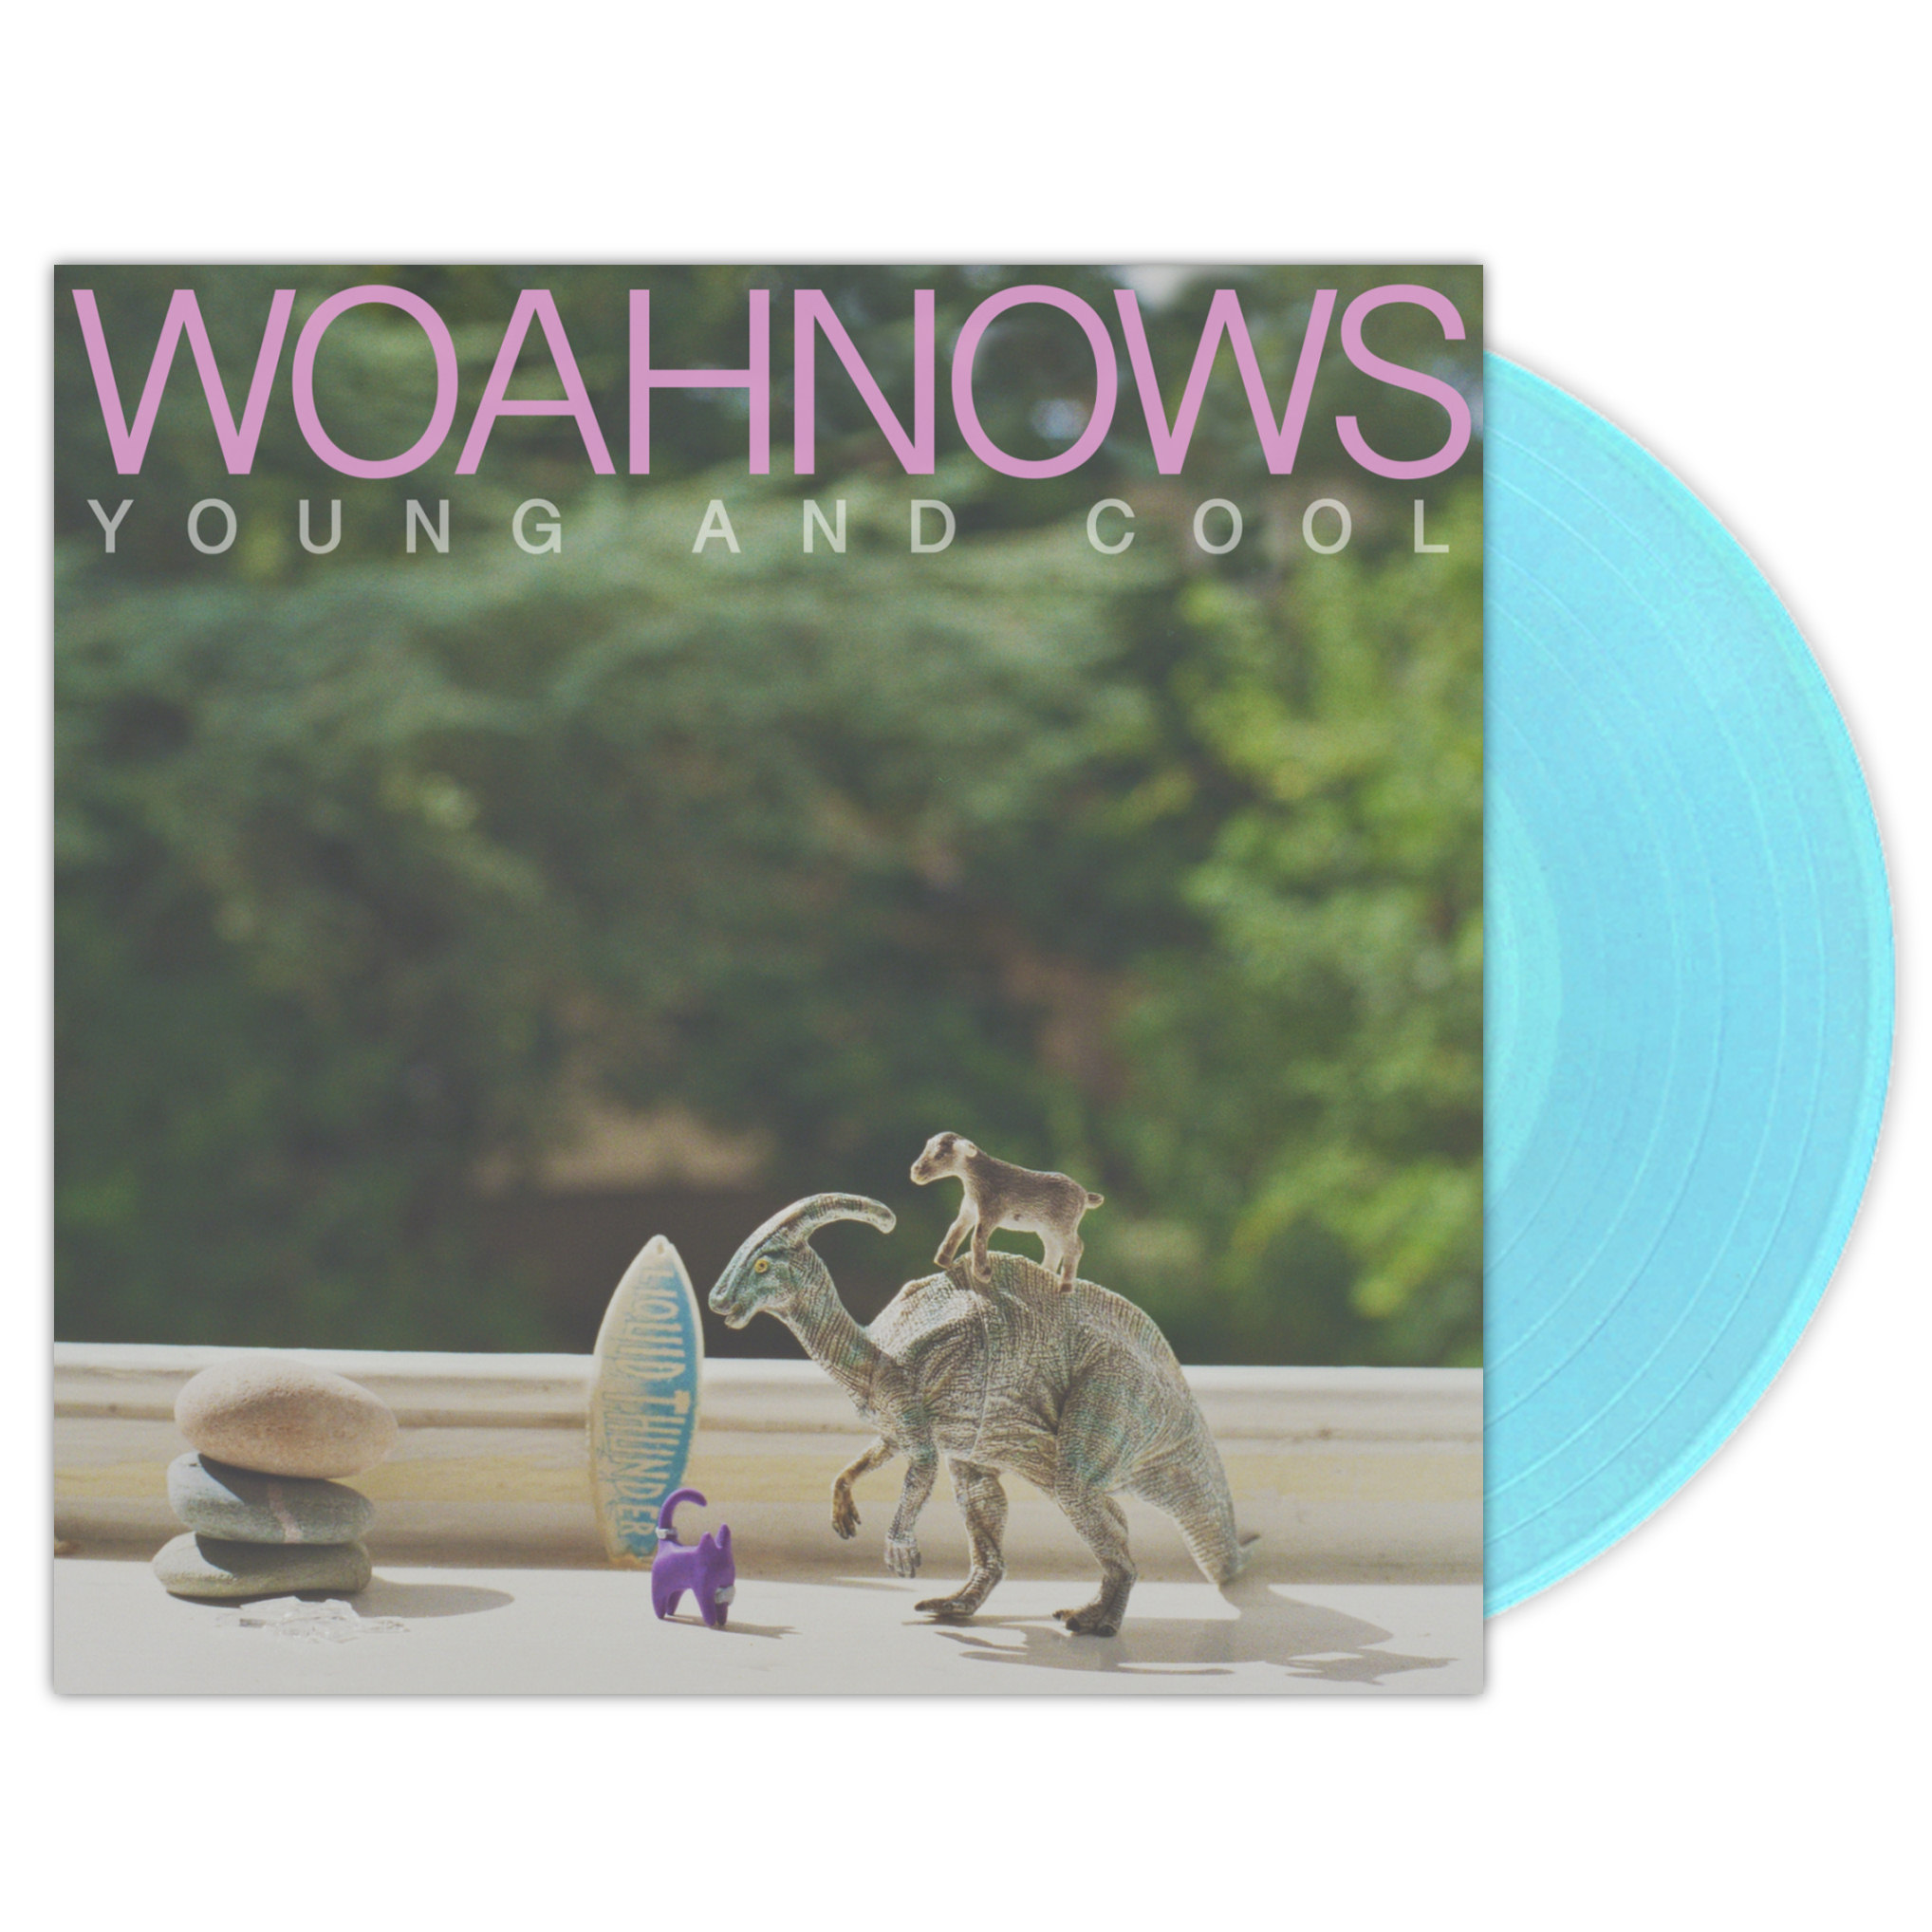 Woahnows - Young and Cool LP / CD